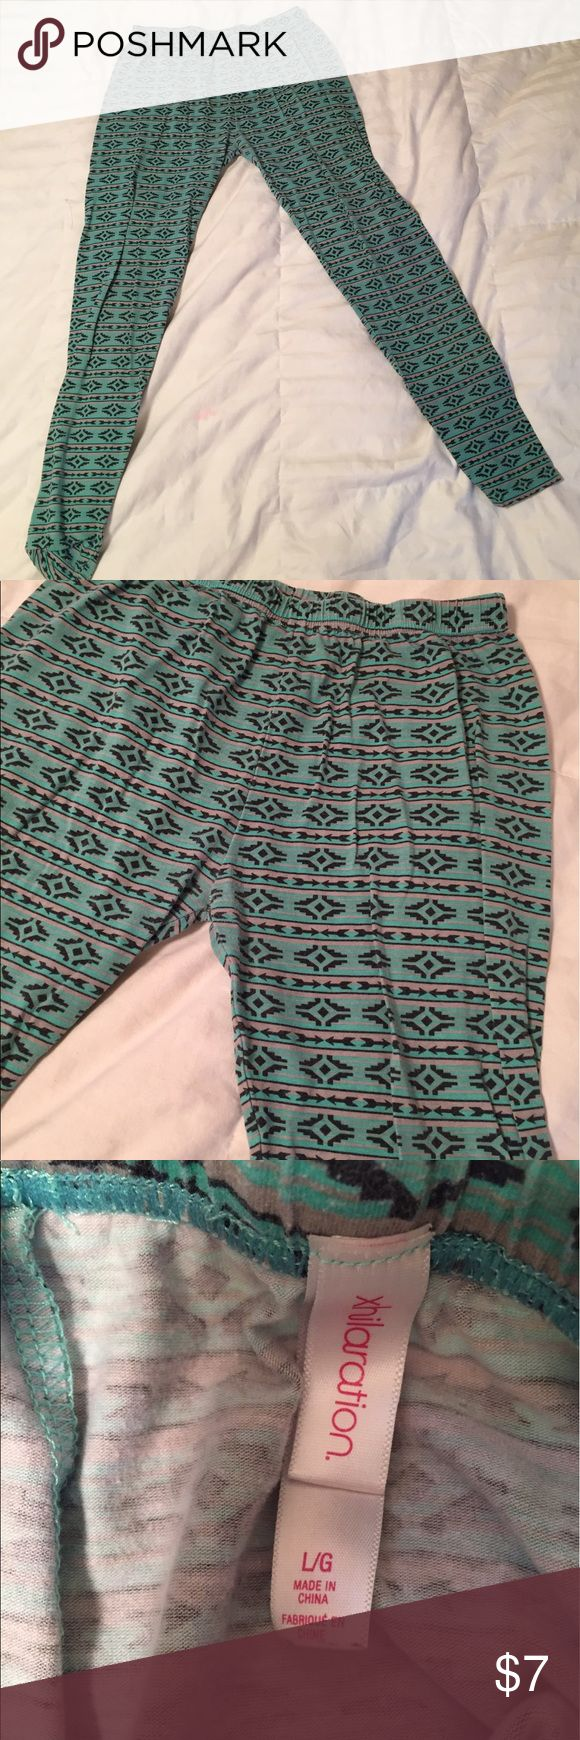 Tribal Print Leggings Black, teal, and grey tribal print cotton leggings. The lightweight material has a Skinny fit that covers the full leg. Great to pair with solid color ruining tops. Xhilaration Pants Leggings